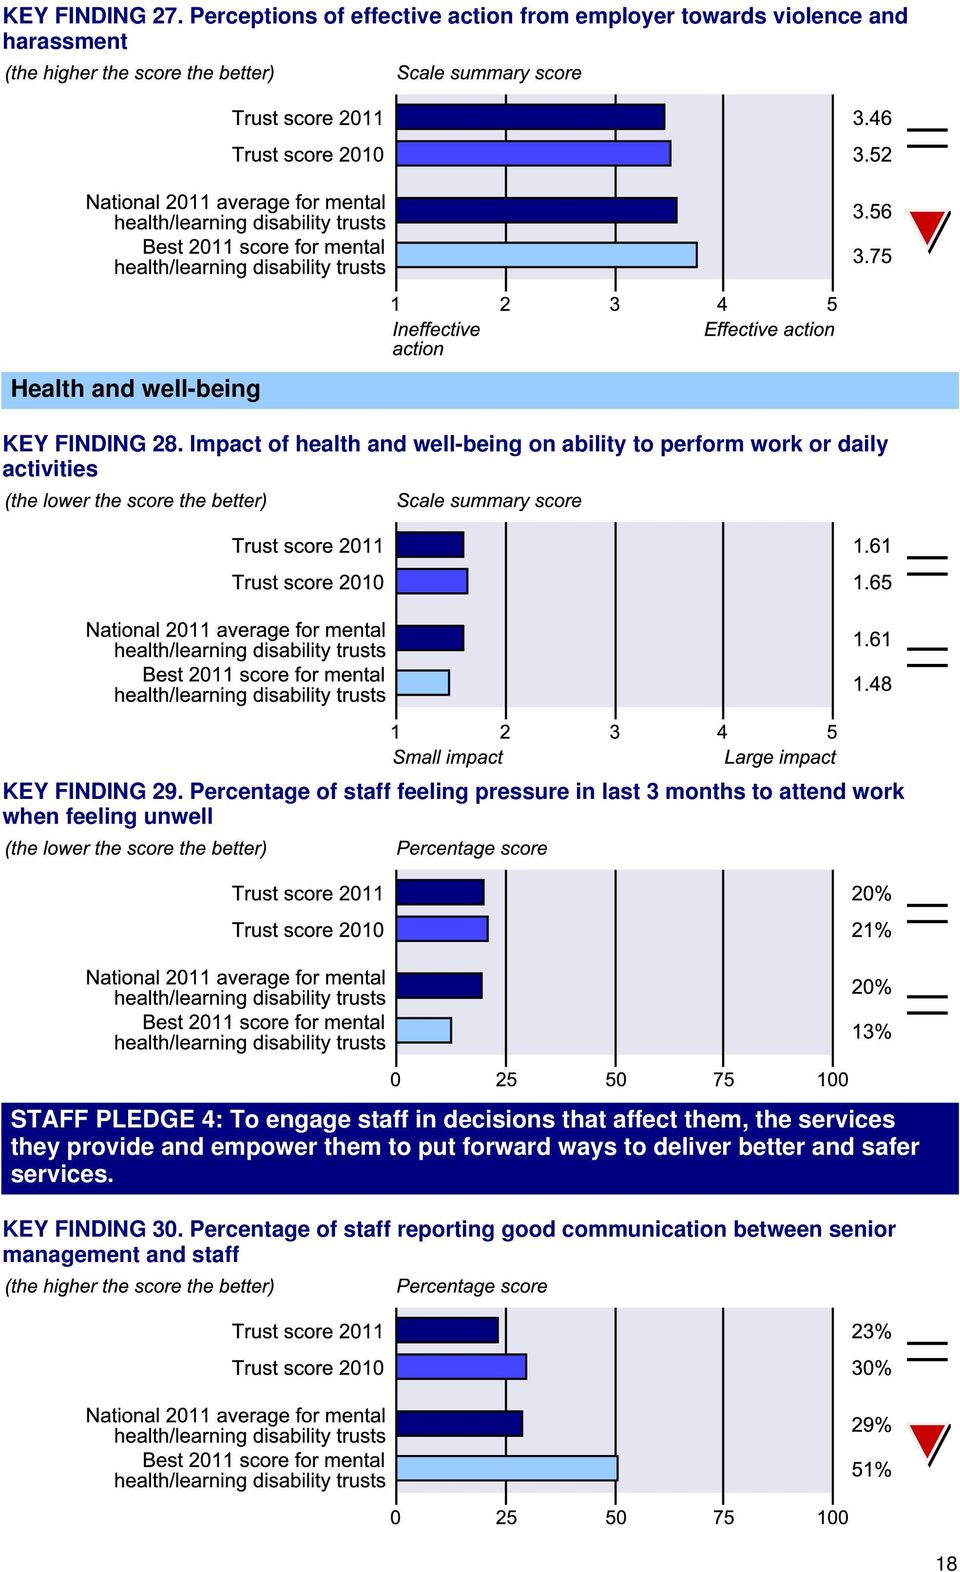 Percentage of staff feeling pressure in last 3 months to attend work when feeling unwell STAFF PLEDGE 4: To engage staff in decisions that affect